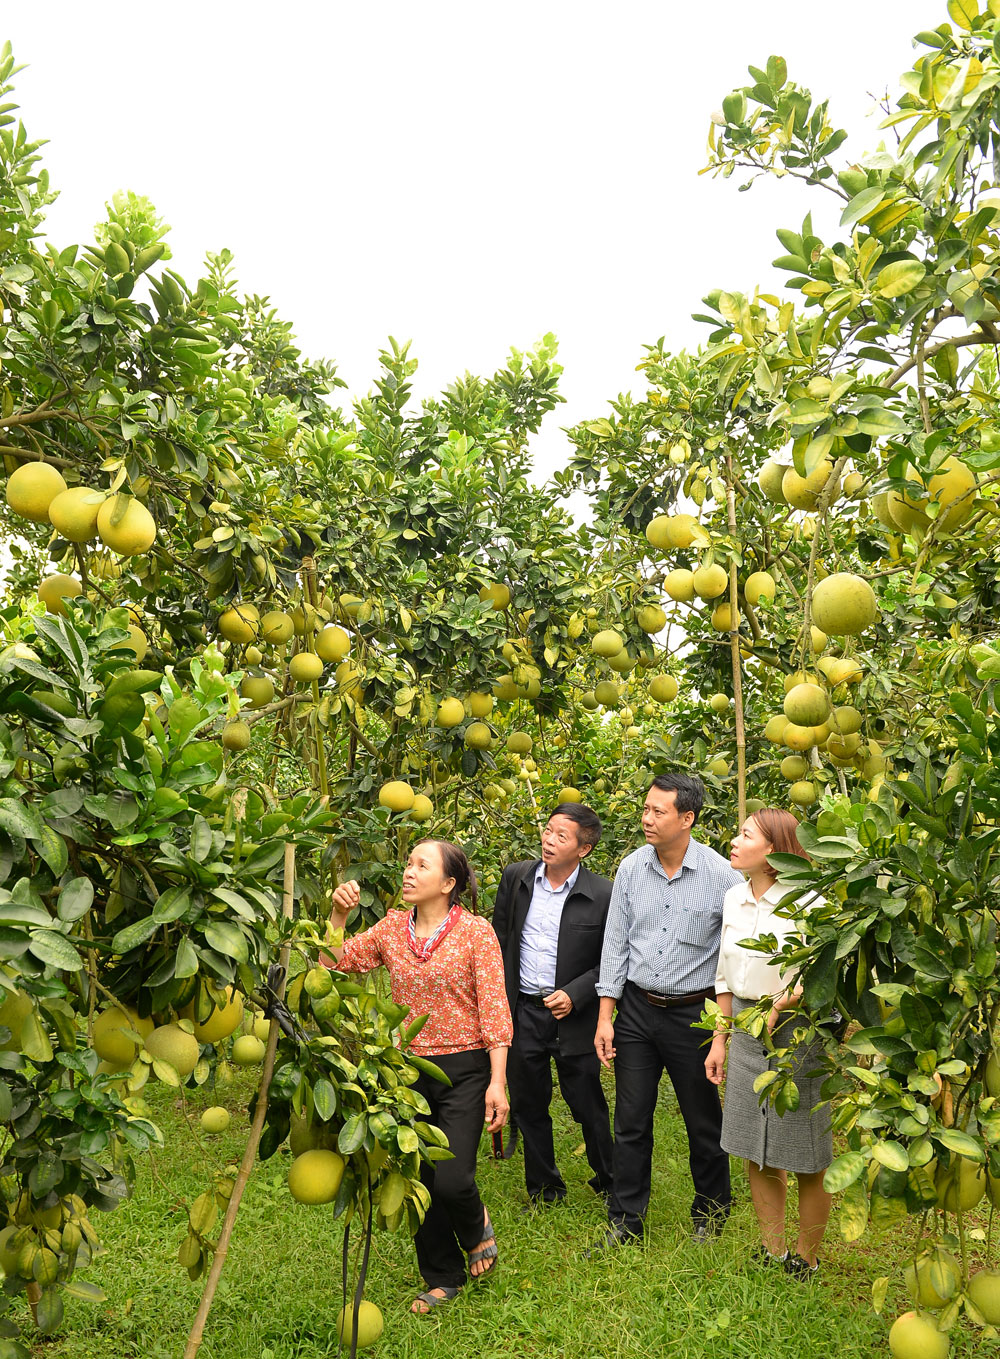 Orange and pomelo, laden orchards, draw numerous visitors, Luc Ngan district, Bac Giang province, orchard tour, food hygiene and safety, sweet fruit